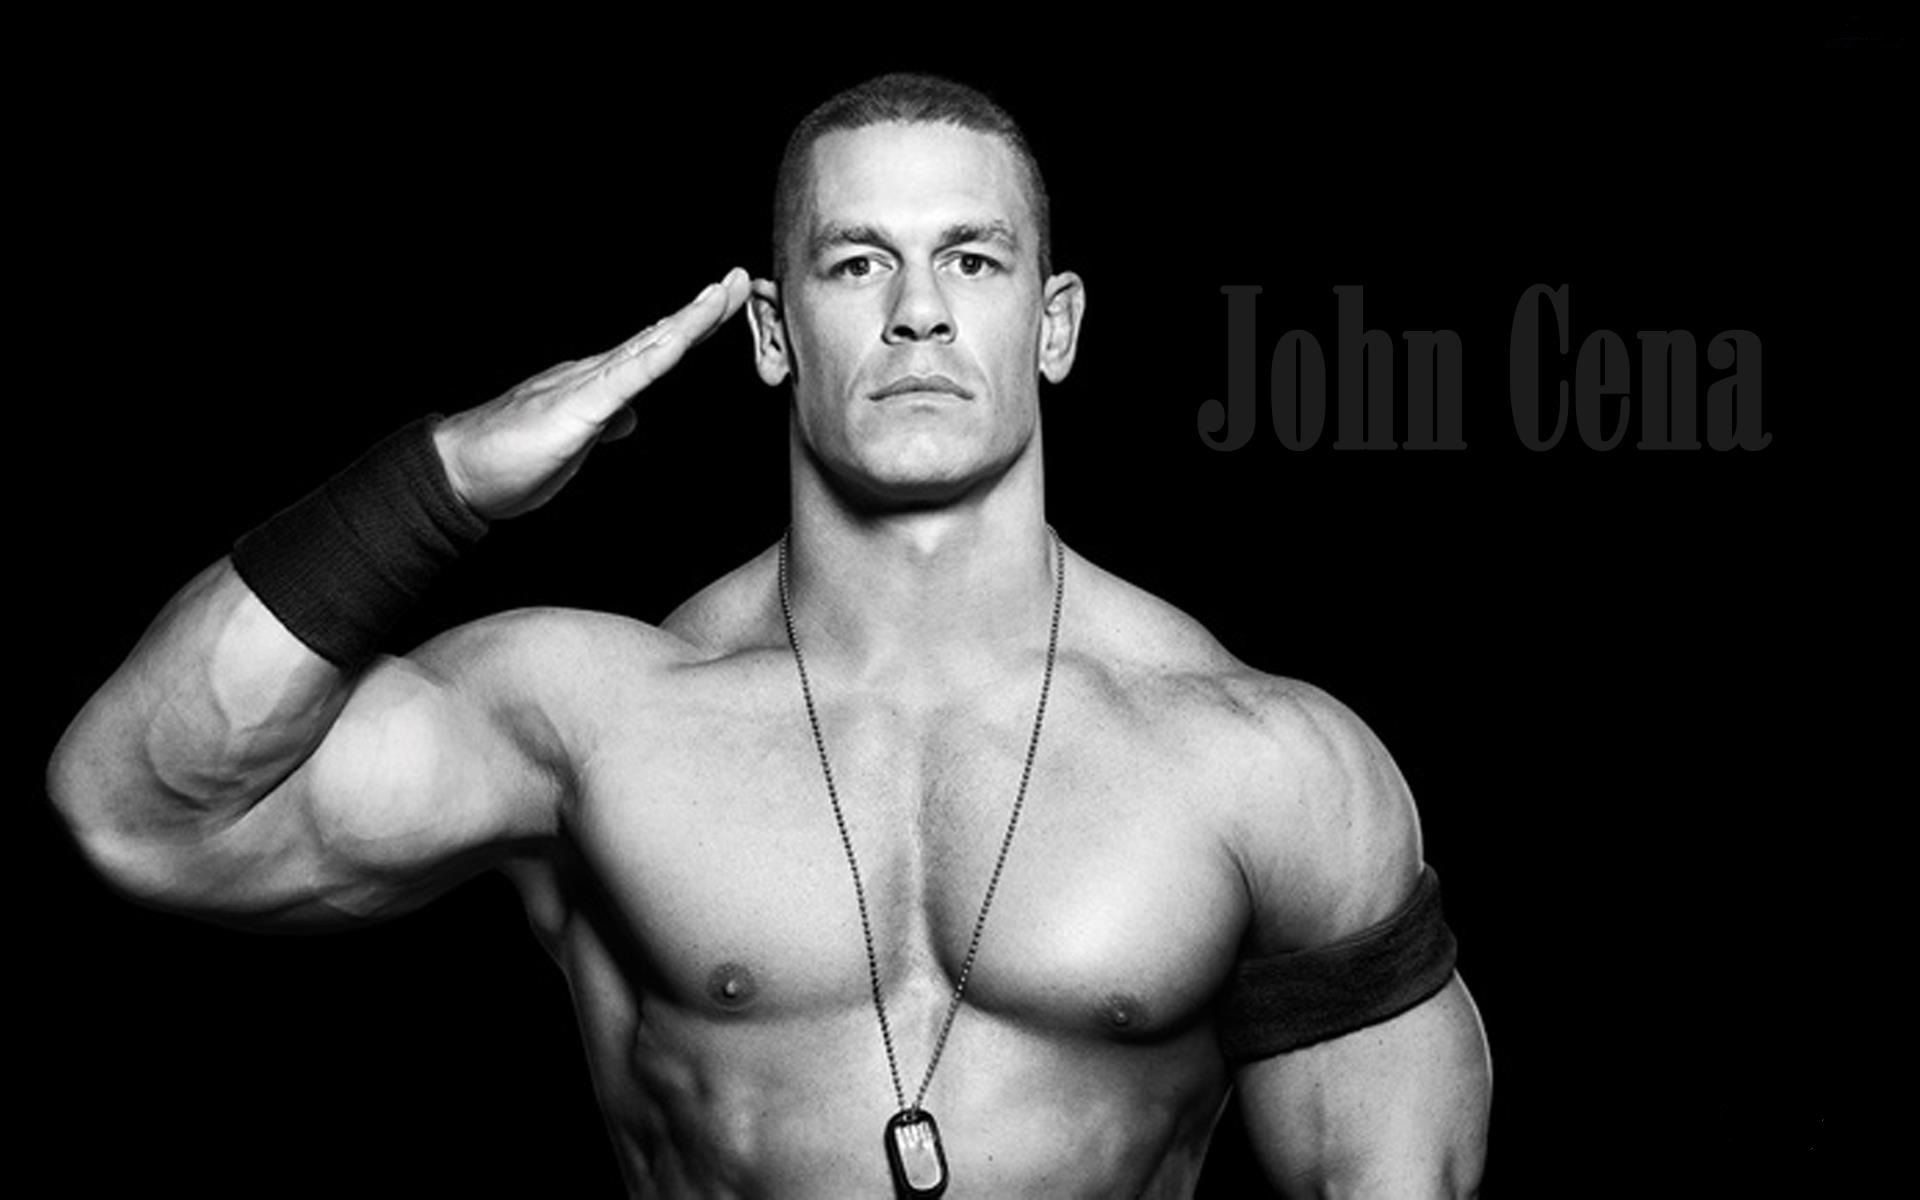 1920x1200 John Cena Wallpapers HD - Free download latest John Cena Wallpapers HD for  Computer, Mobile, iPhone, iPad or any Gadget at WallpapersCharlie.com.